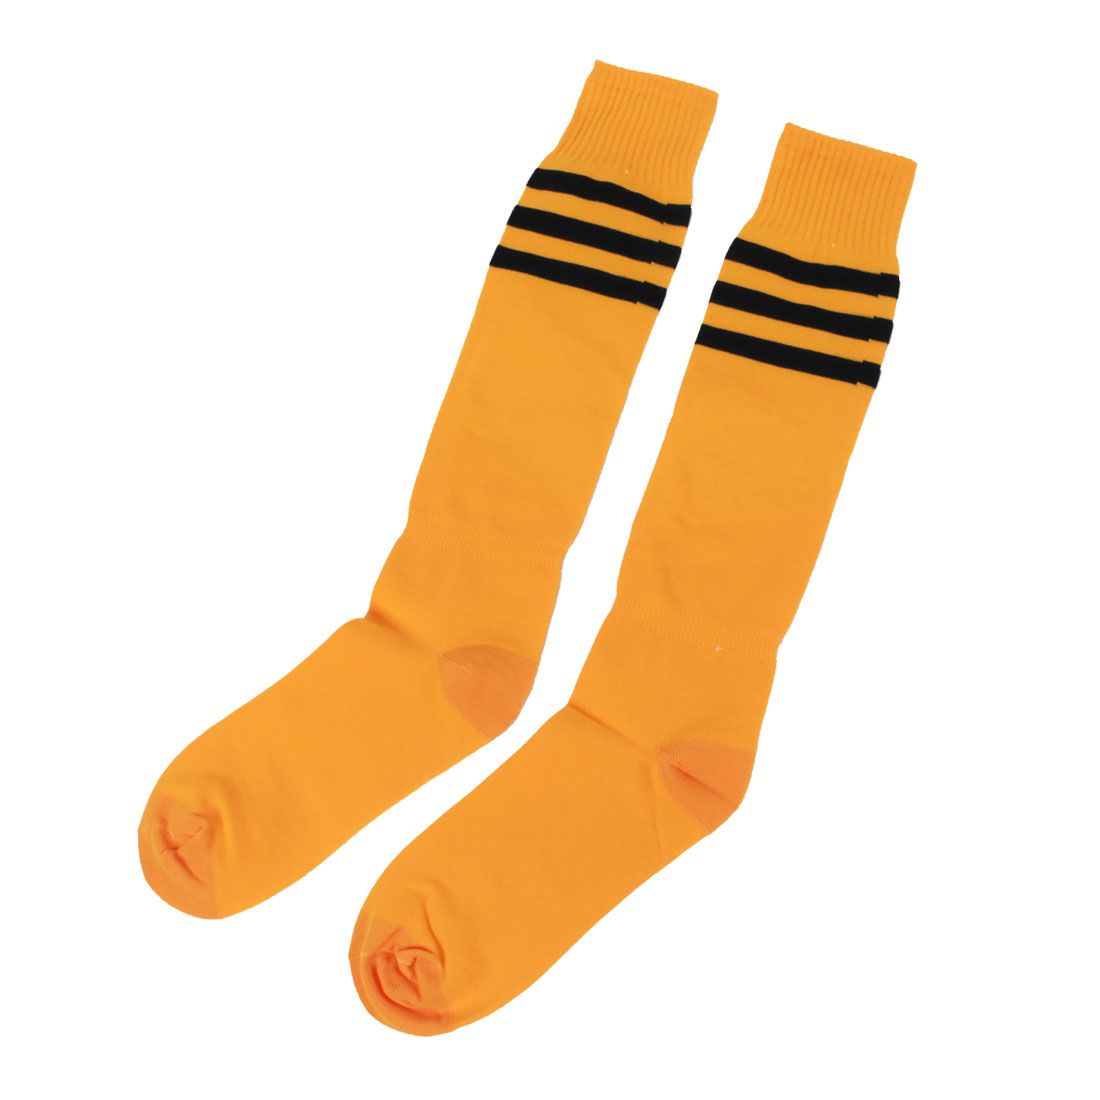 Men Knee High Striped Elastic Soccer Rugby Football Socks Orange Black Pair